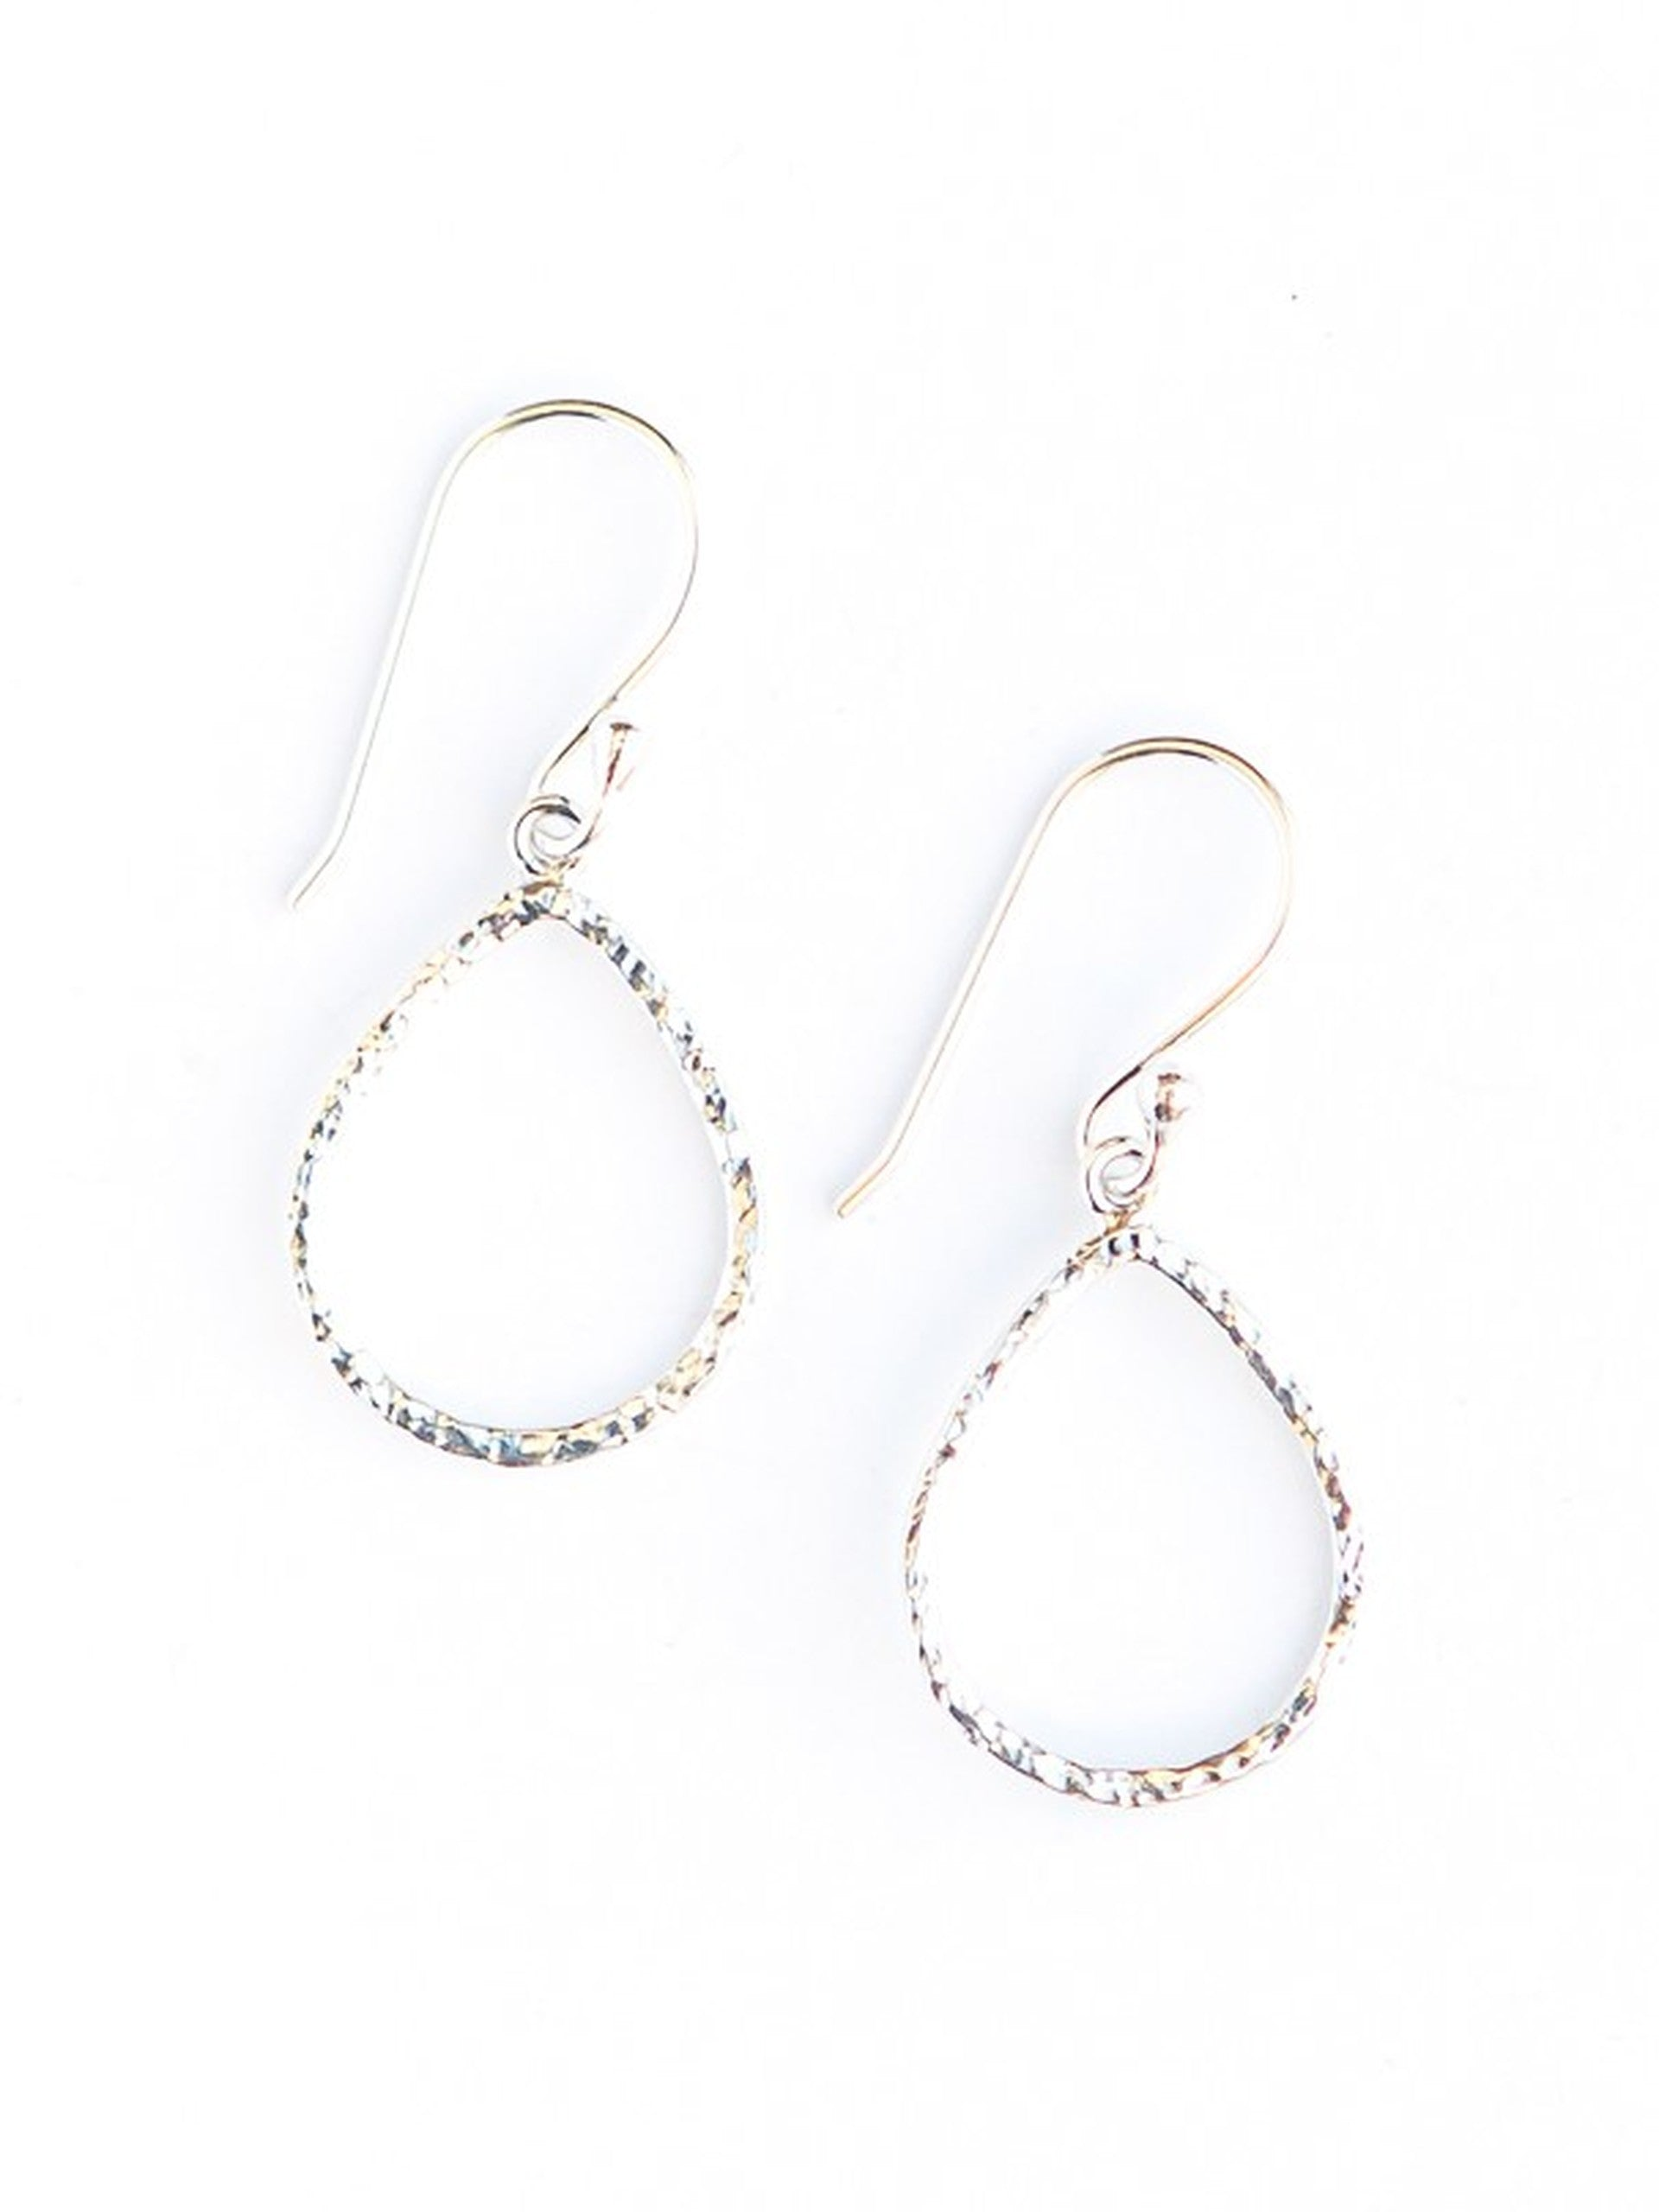 Lorena Loop Earrings - Sterling